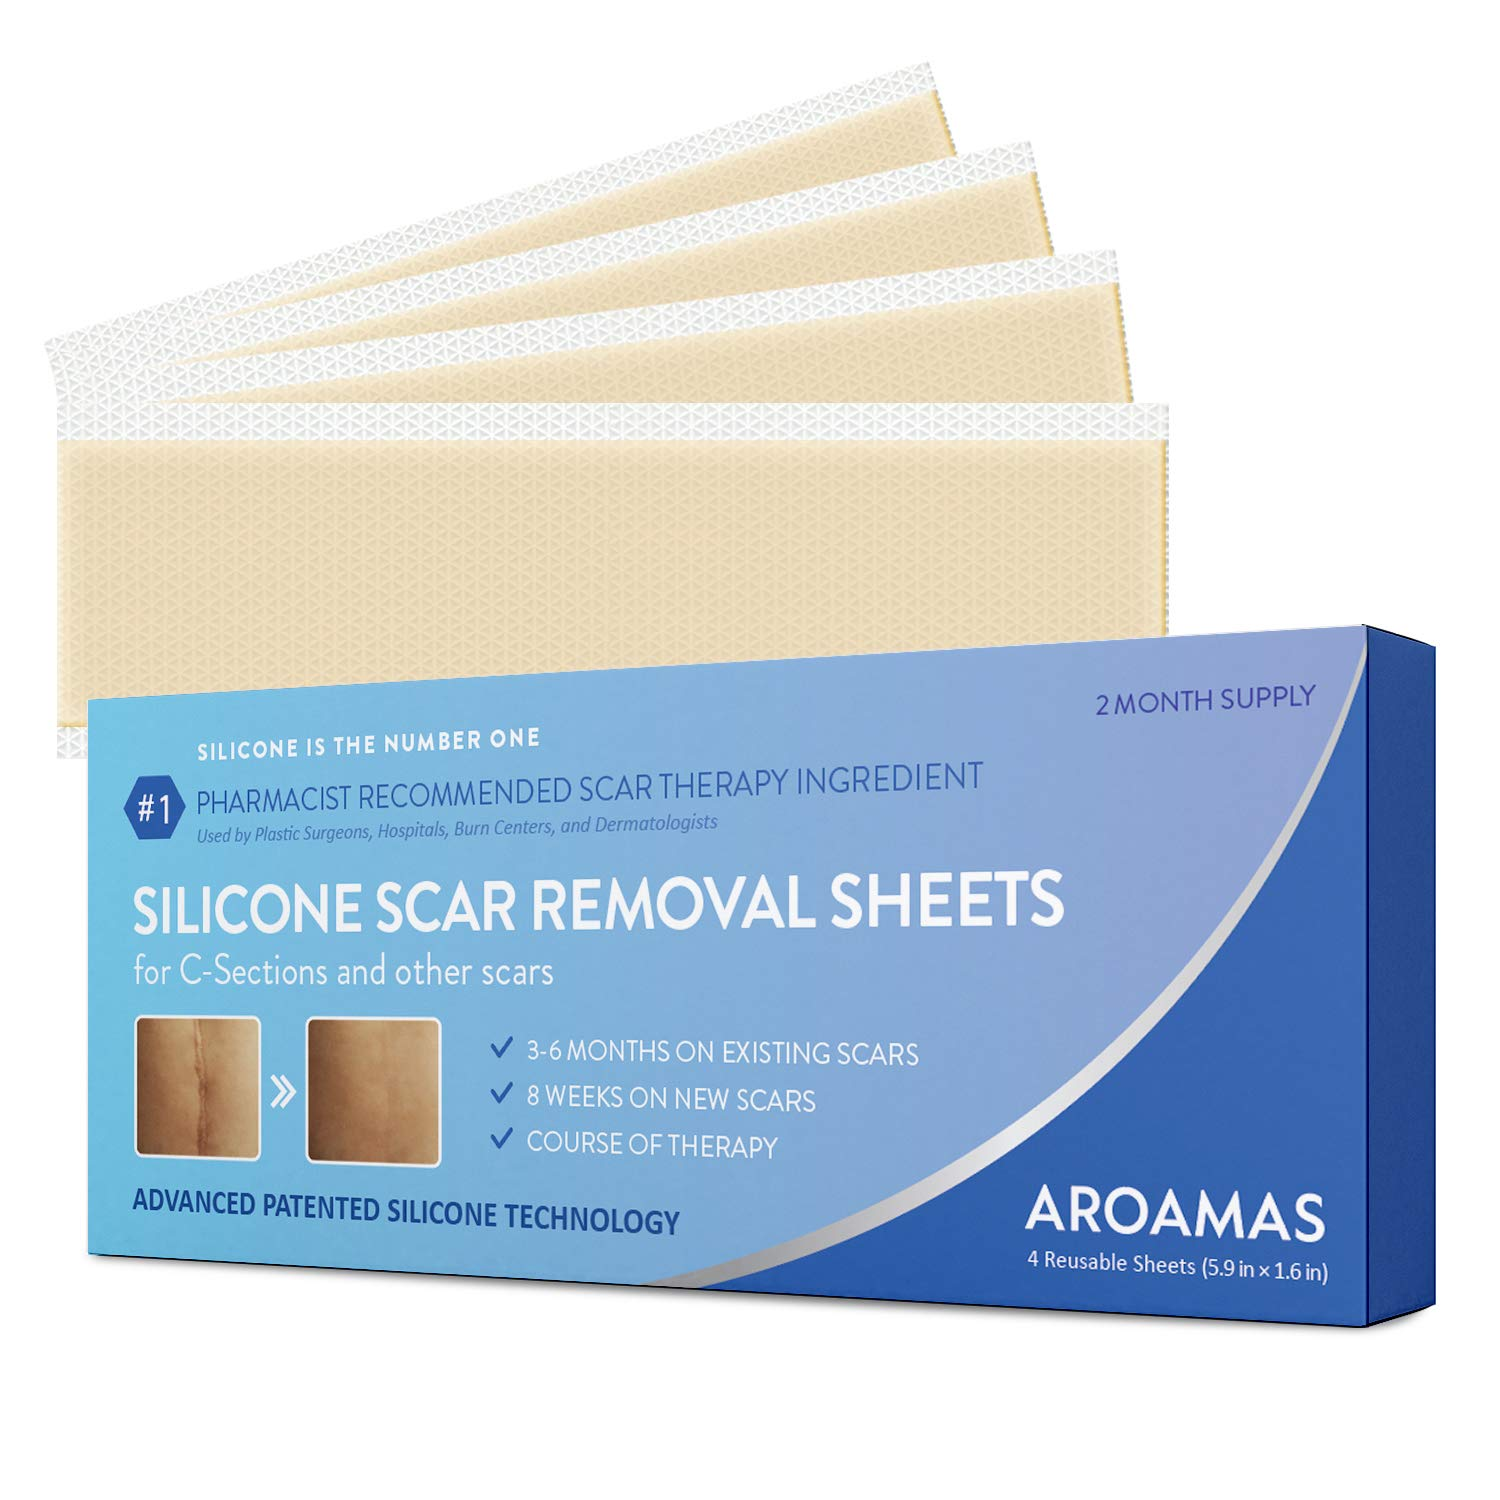 """Aroamas Professional Silicone C-Section Scar Removal Sheets, Soft Adhesive Fabric Strips, Drug-Free, Relieves Itching, Remove Keloid Scars, Acne. 5.9"""" ✕ 1.6"""", 4 pcs (2 Month Supply), Beige"""